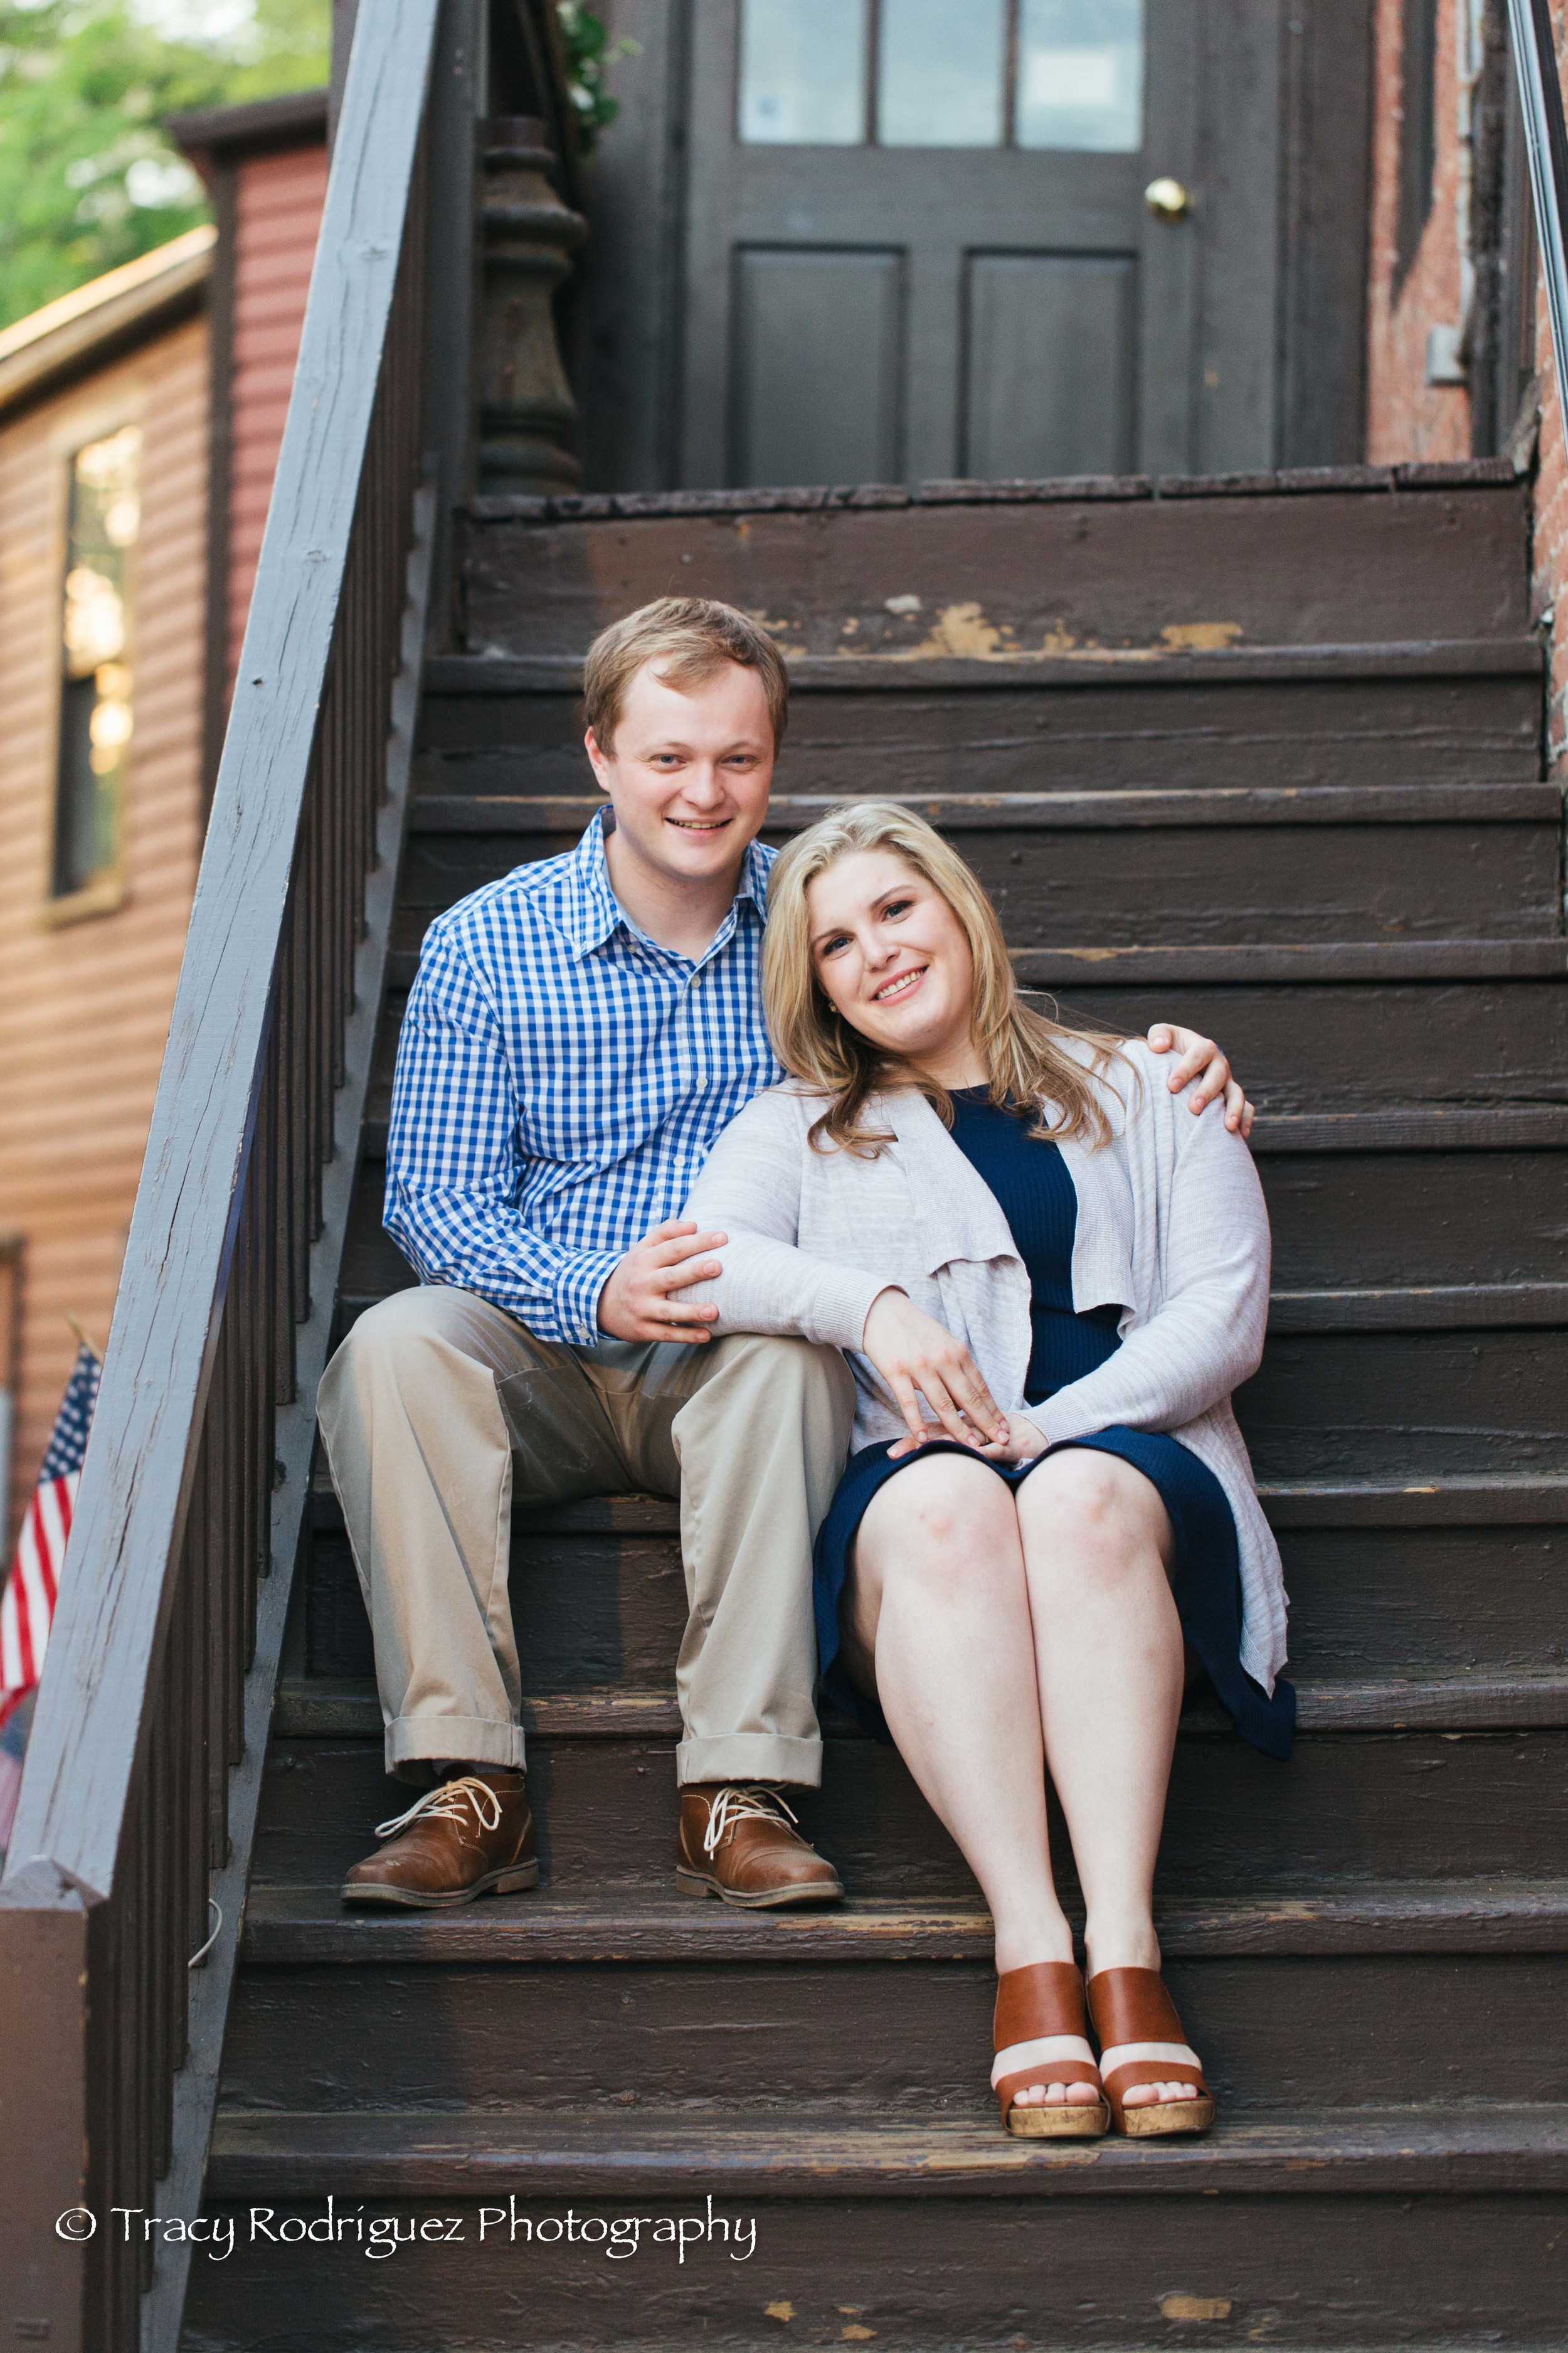 TracyRodriguezPhotography-Engagement-LowRes-96.jpg